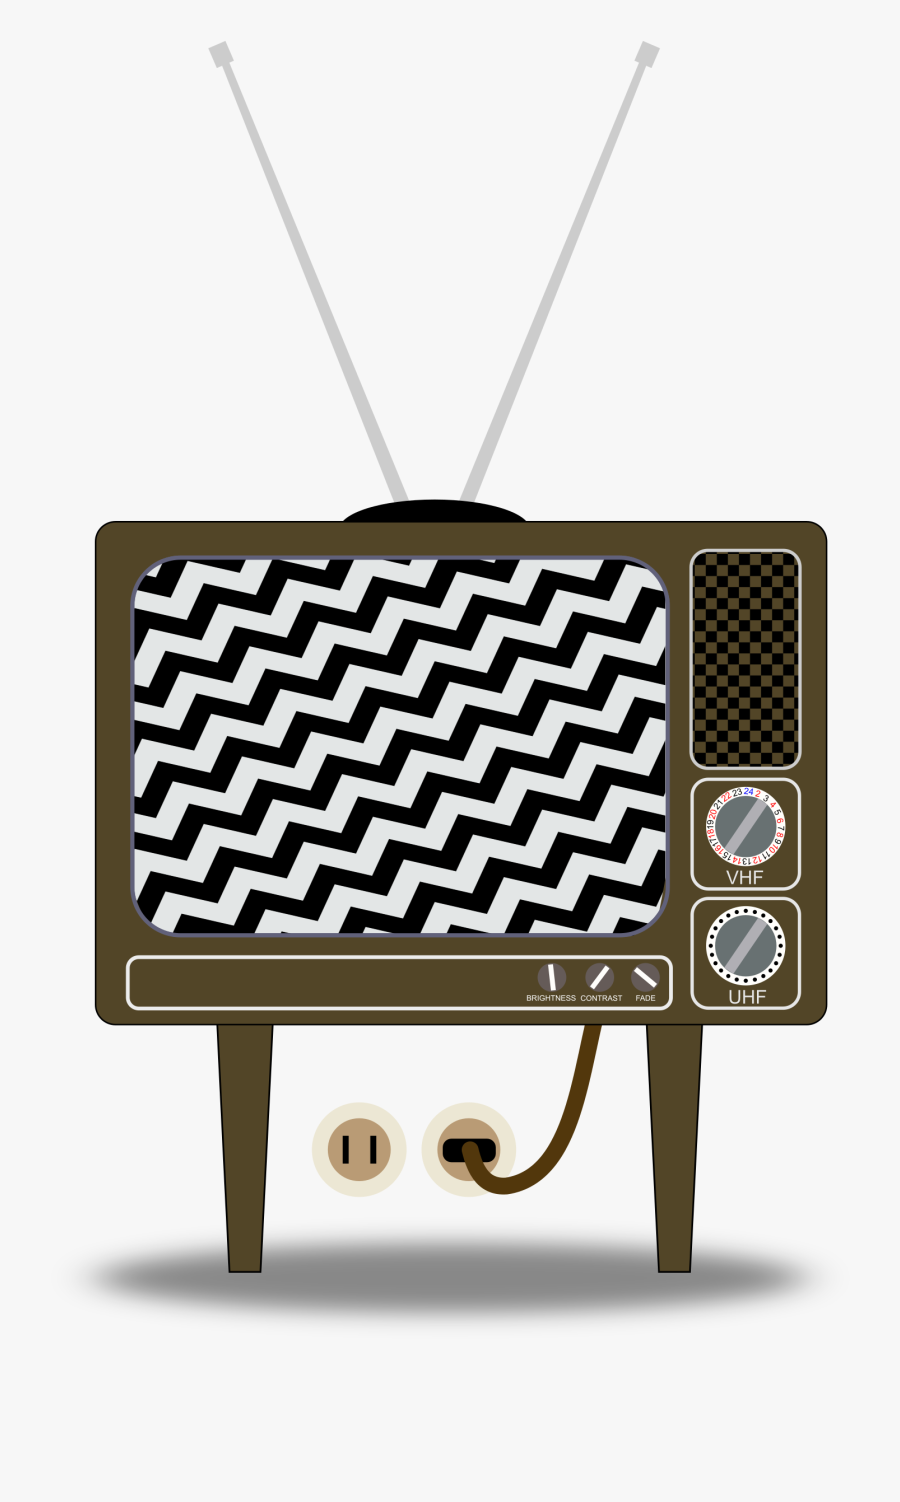 Tv Clipart Static - Old Fashioned Tv Cartoon, Transparent Clipart